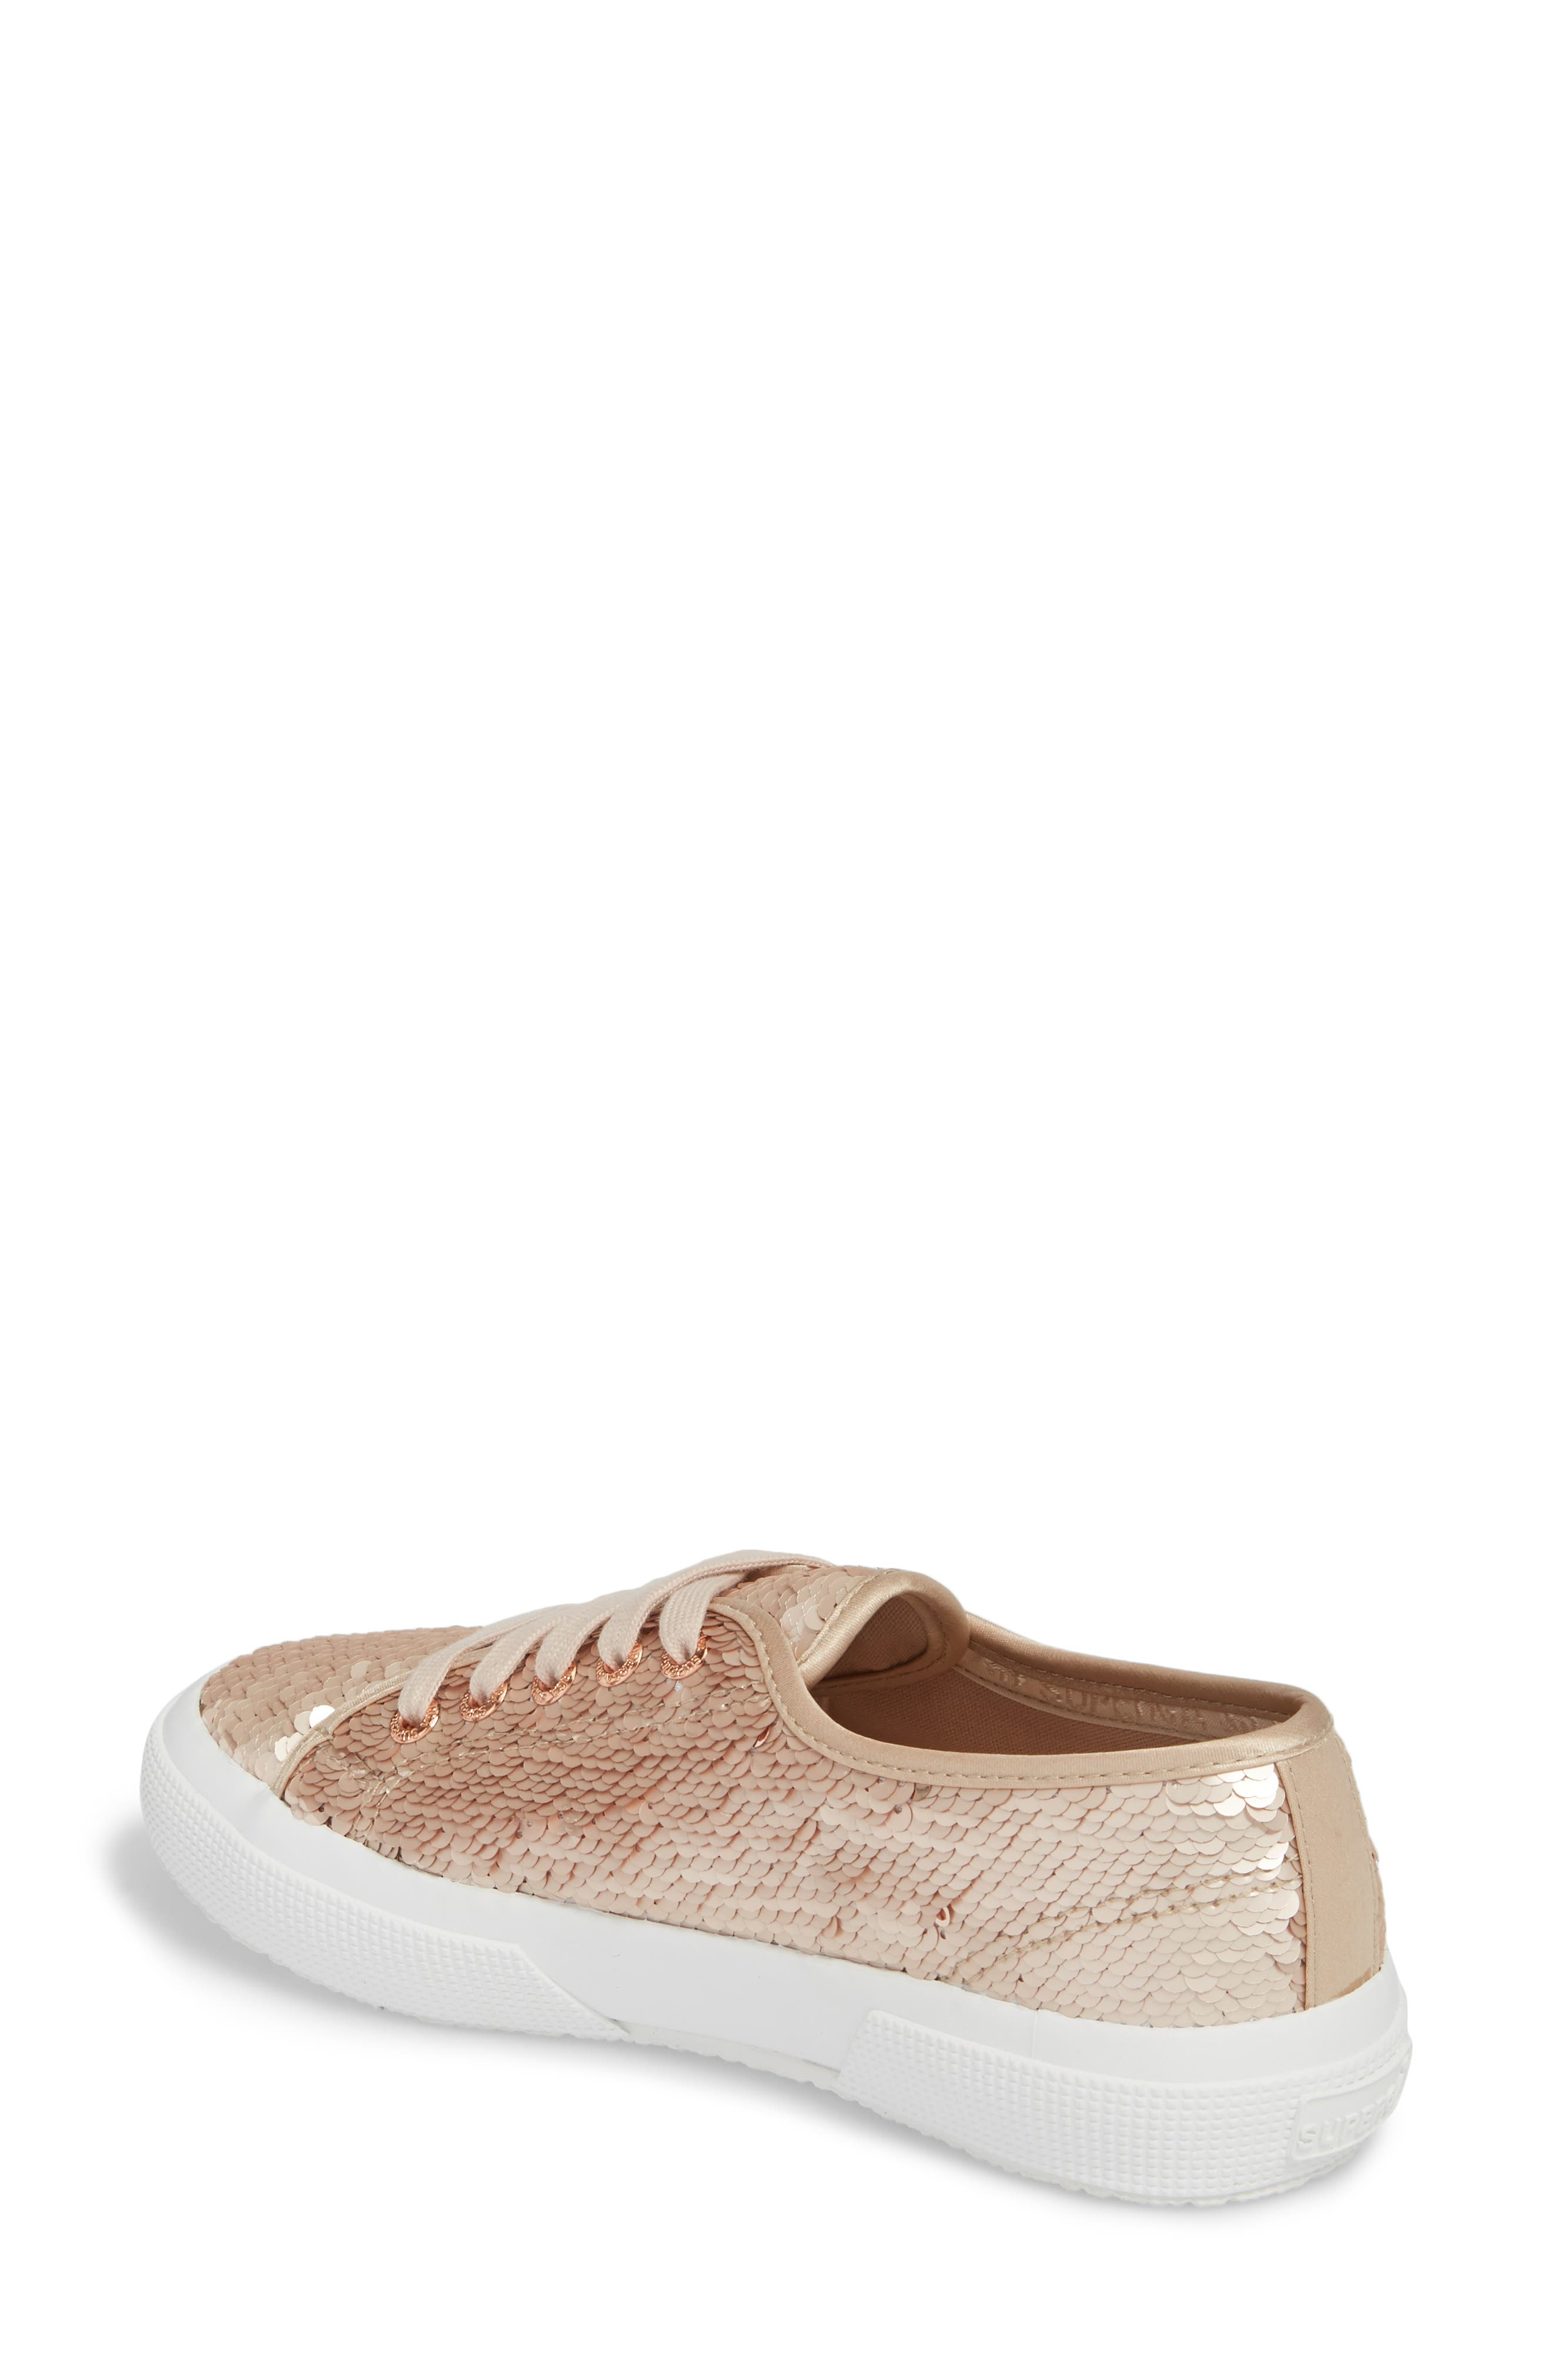 2750 Pairidescent Low Top Sneaker,                             Alternate thumbnail 2, color,                             Rose Gold/ Rose Gold